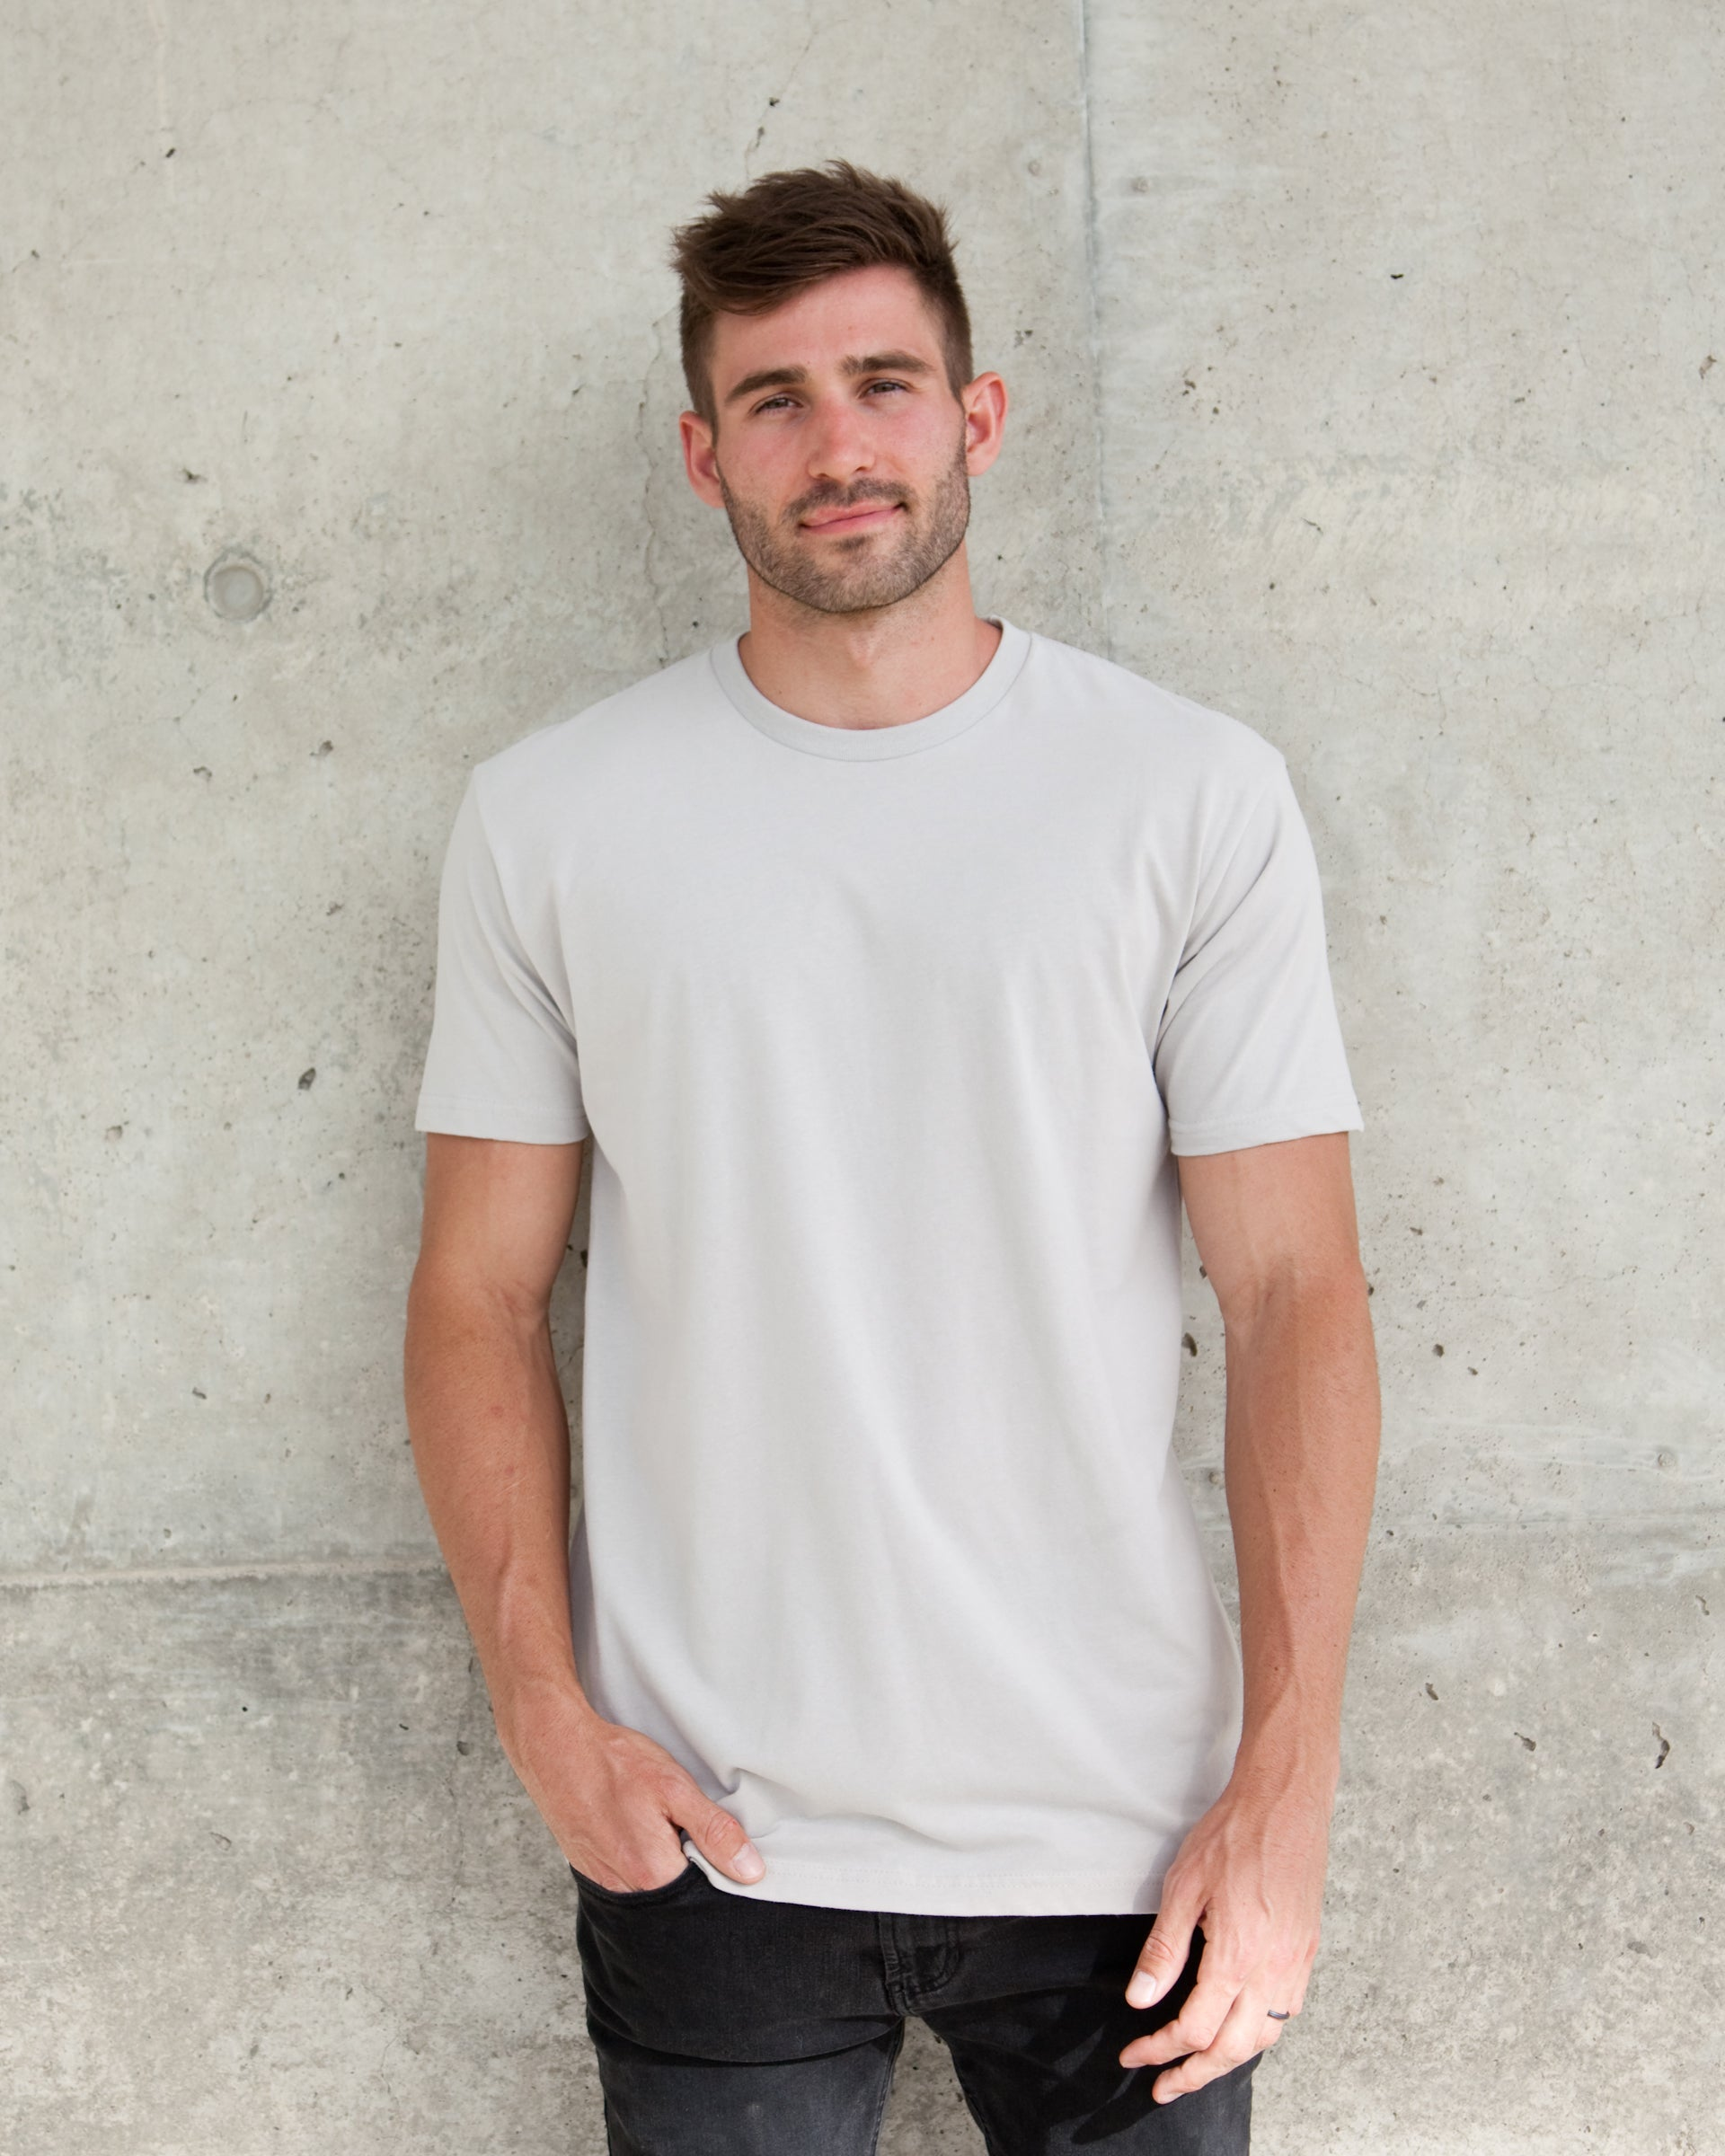 MAGO stone gray solid plain short sleeve tee